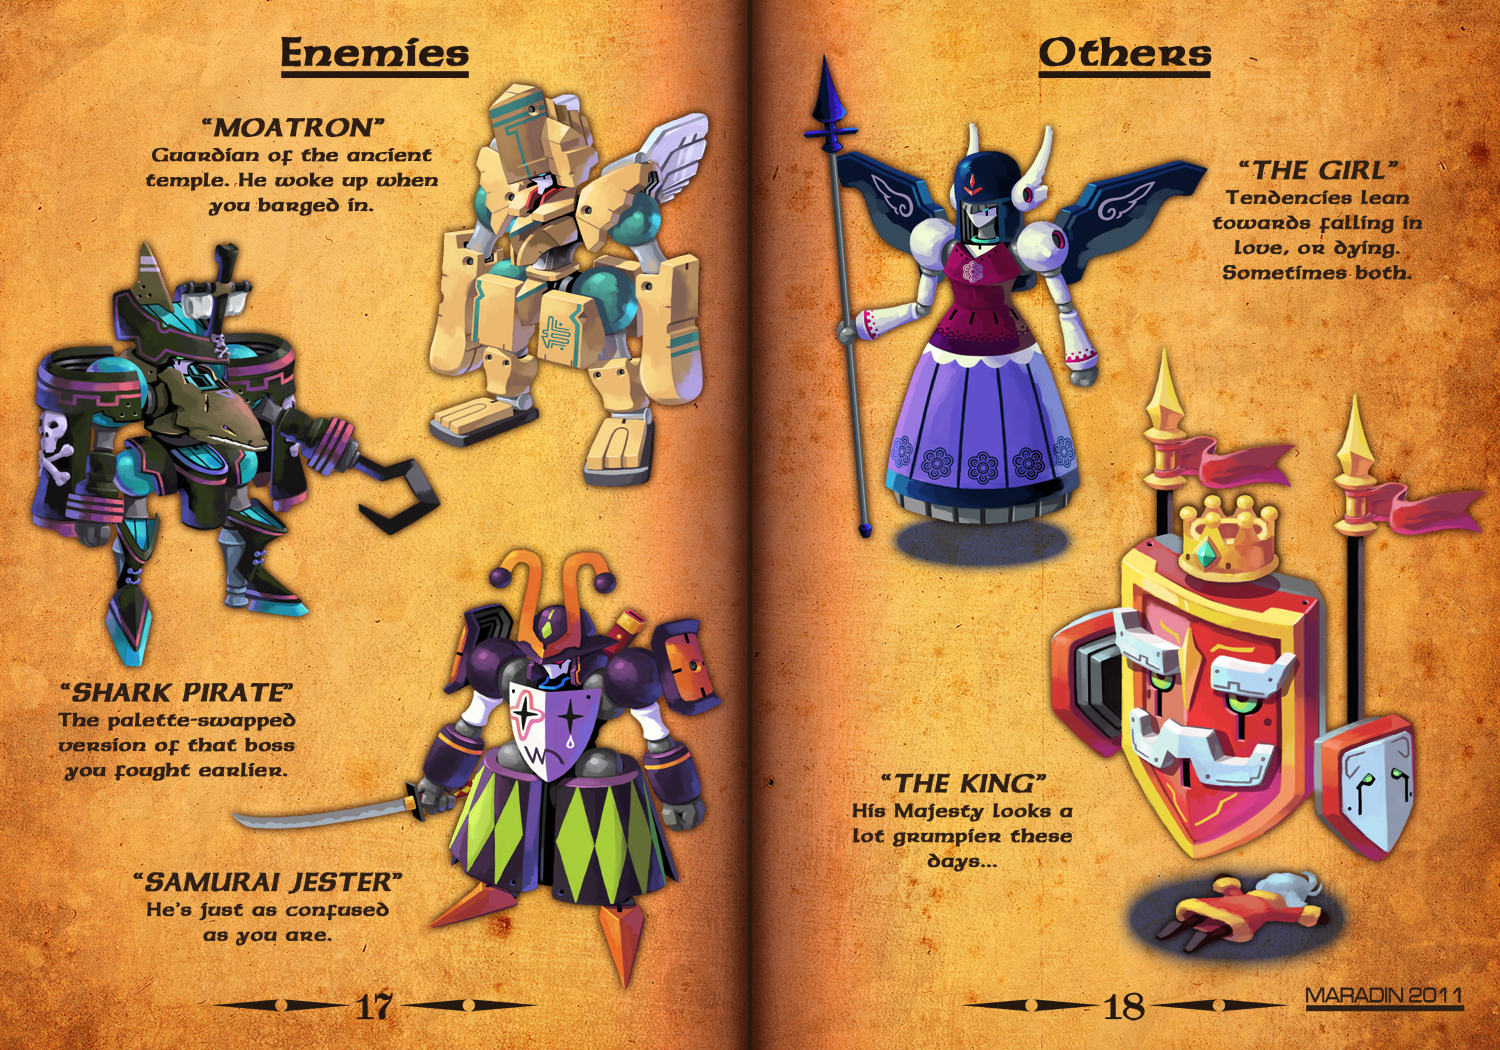 RPG MECHA ENEMIES AND OTHERS by Nidaram